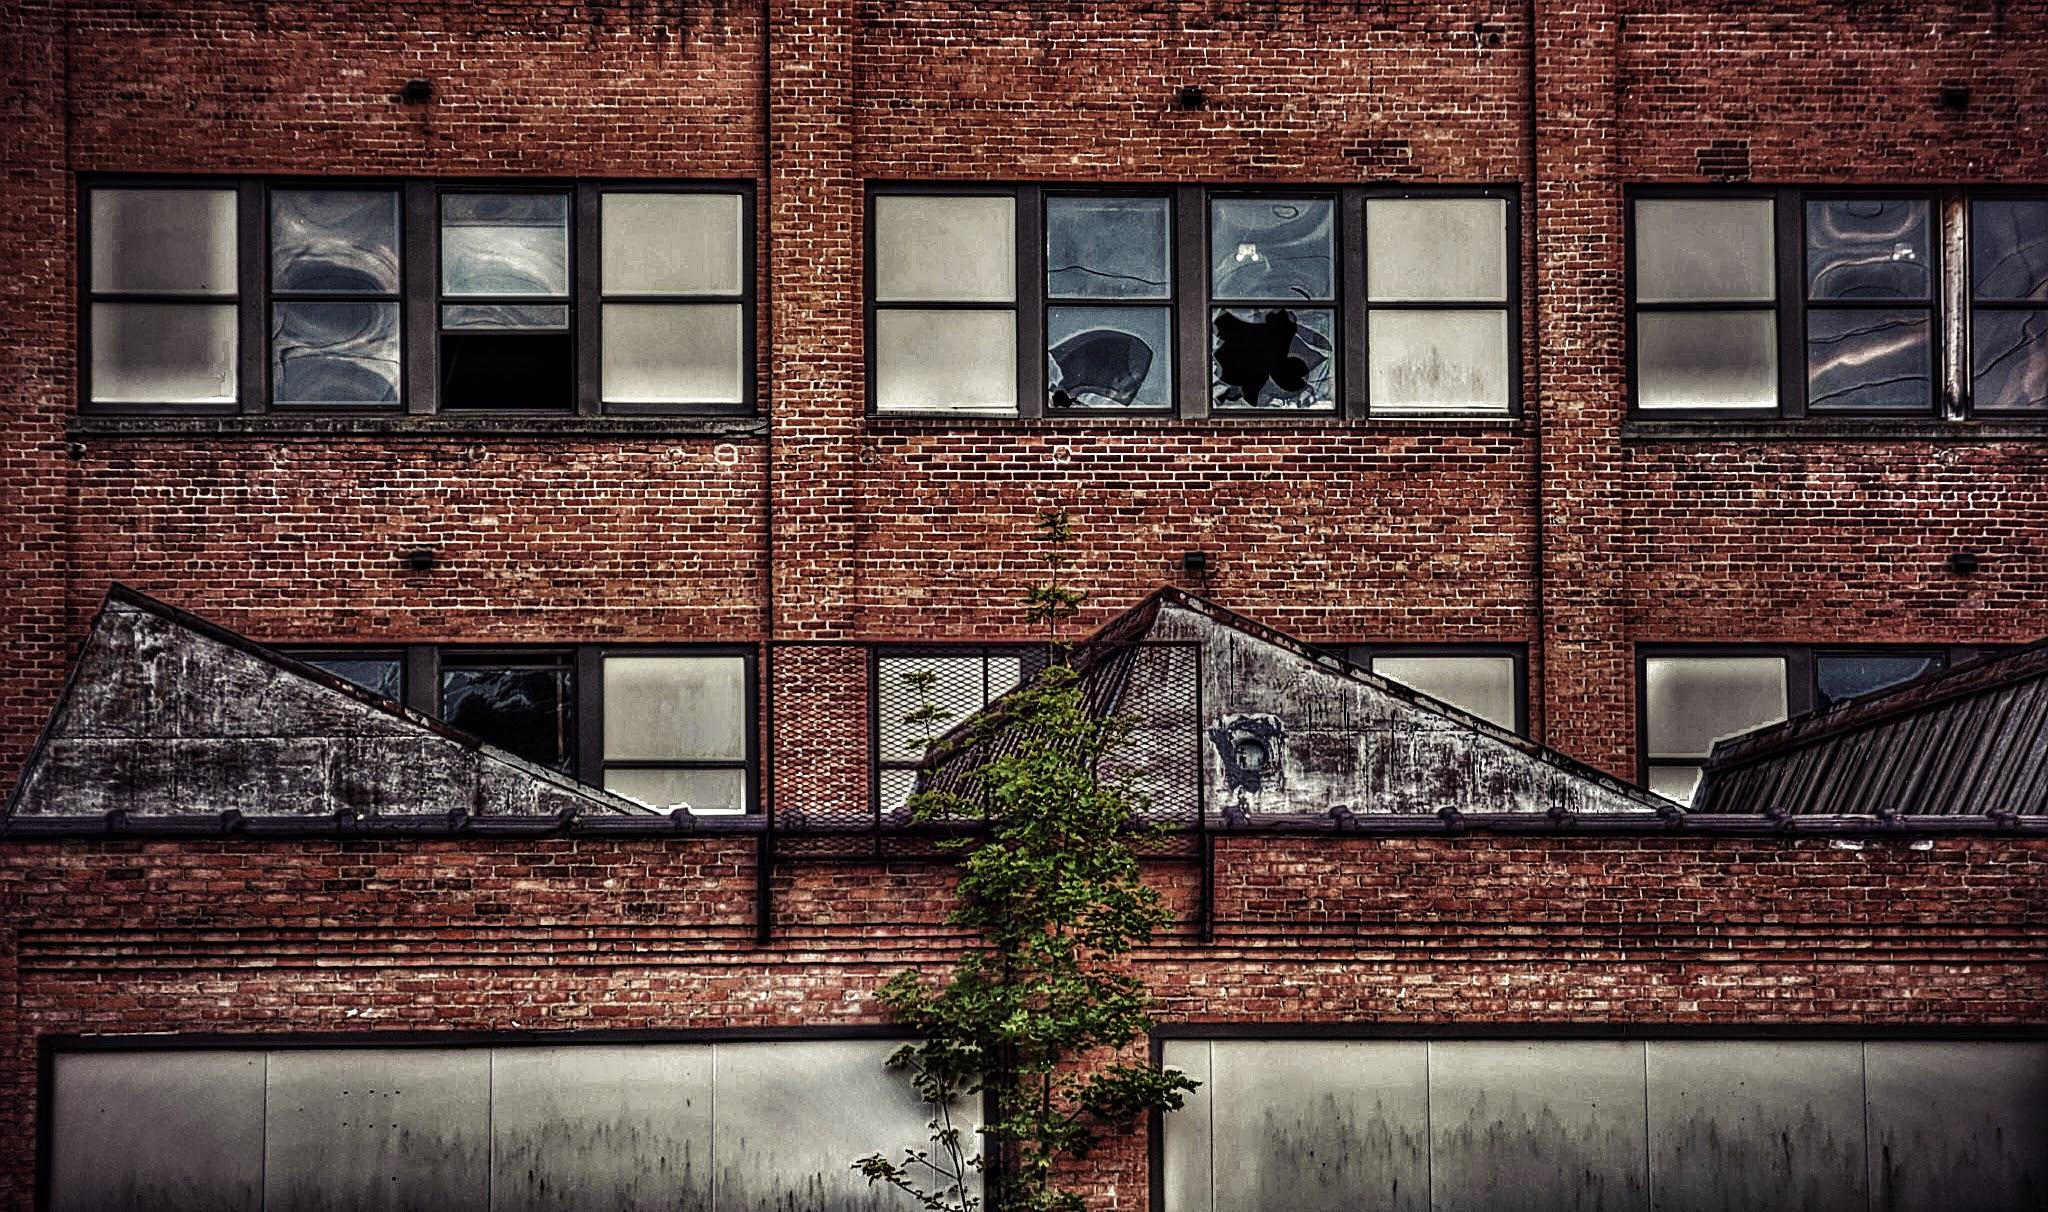 Abandoned Factory, Johnson City, NY by 3dotstudio